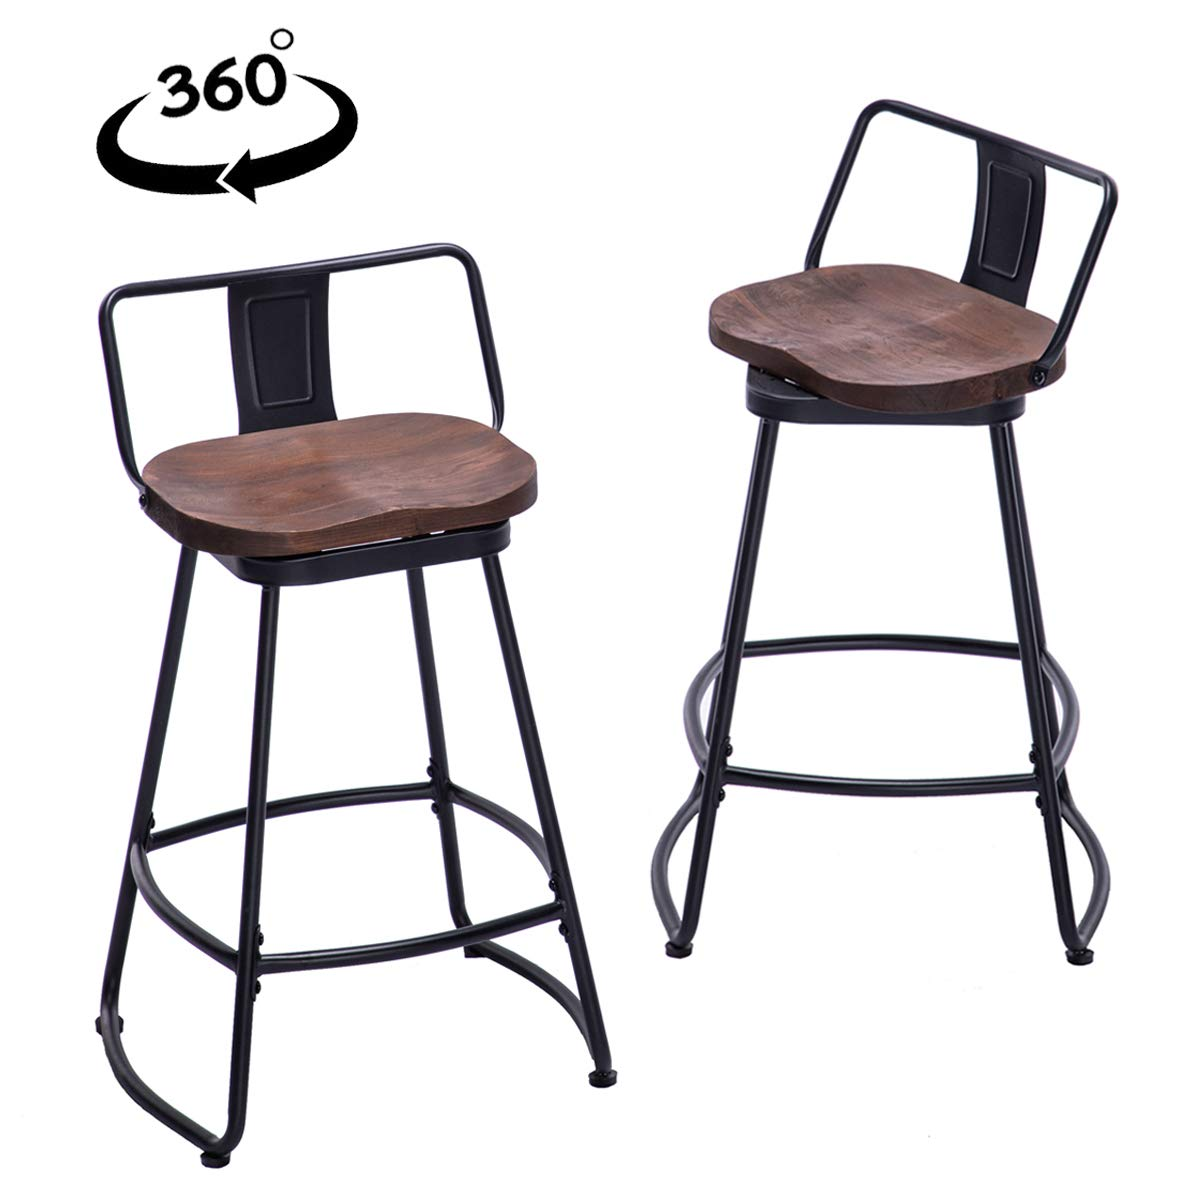 YongQiang Metal Bar Stools Set of 2 Low Back Swivel Wooden Seat Industrial Indoor Outdoor Counter Bar Chairs 26 inch Matte Black